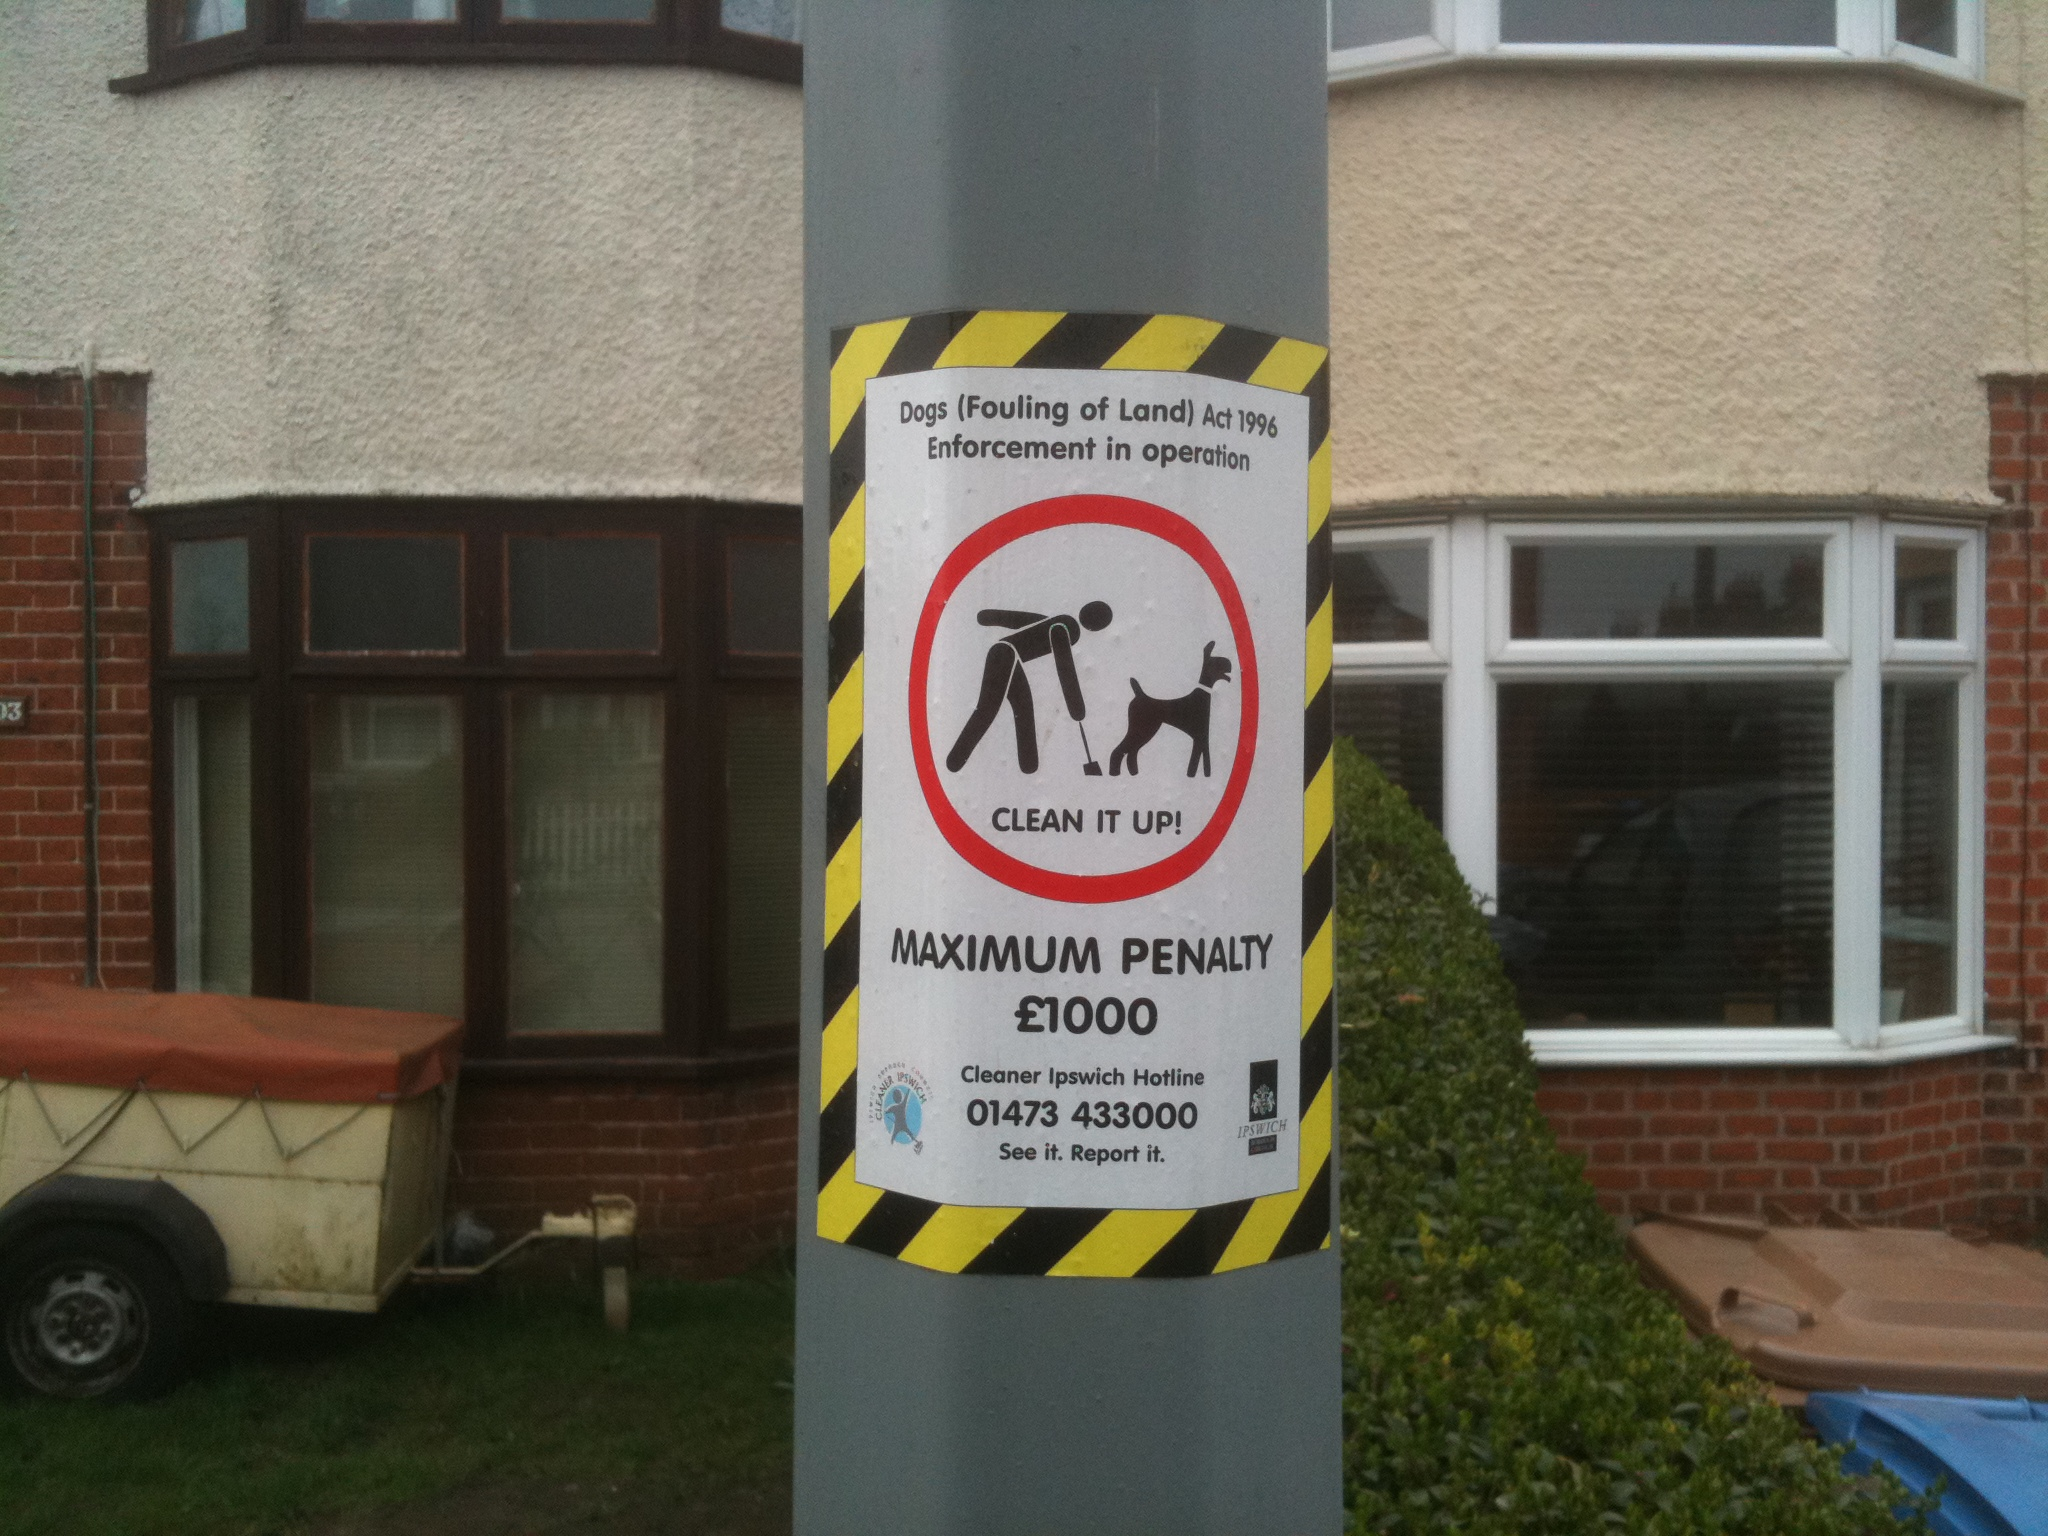 Dog poo on the pavement leads to £1,000 fine, car storage is